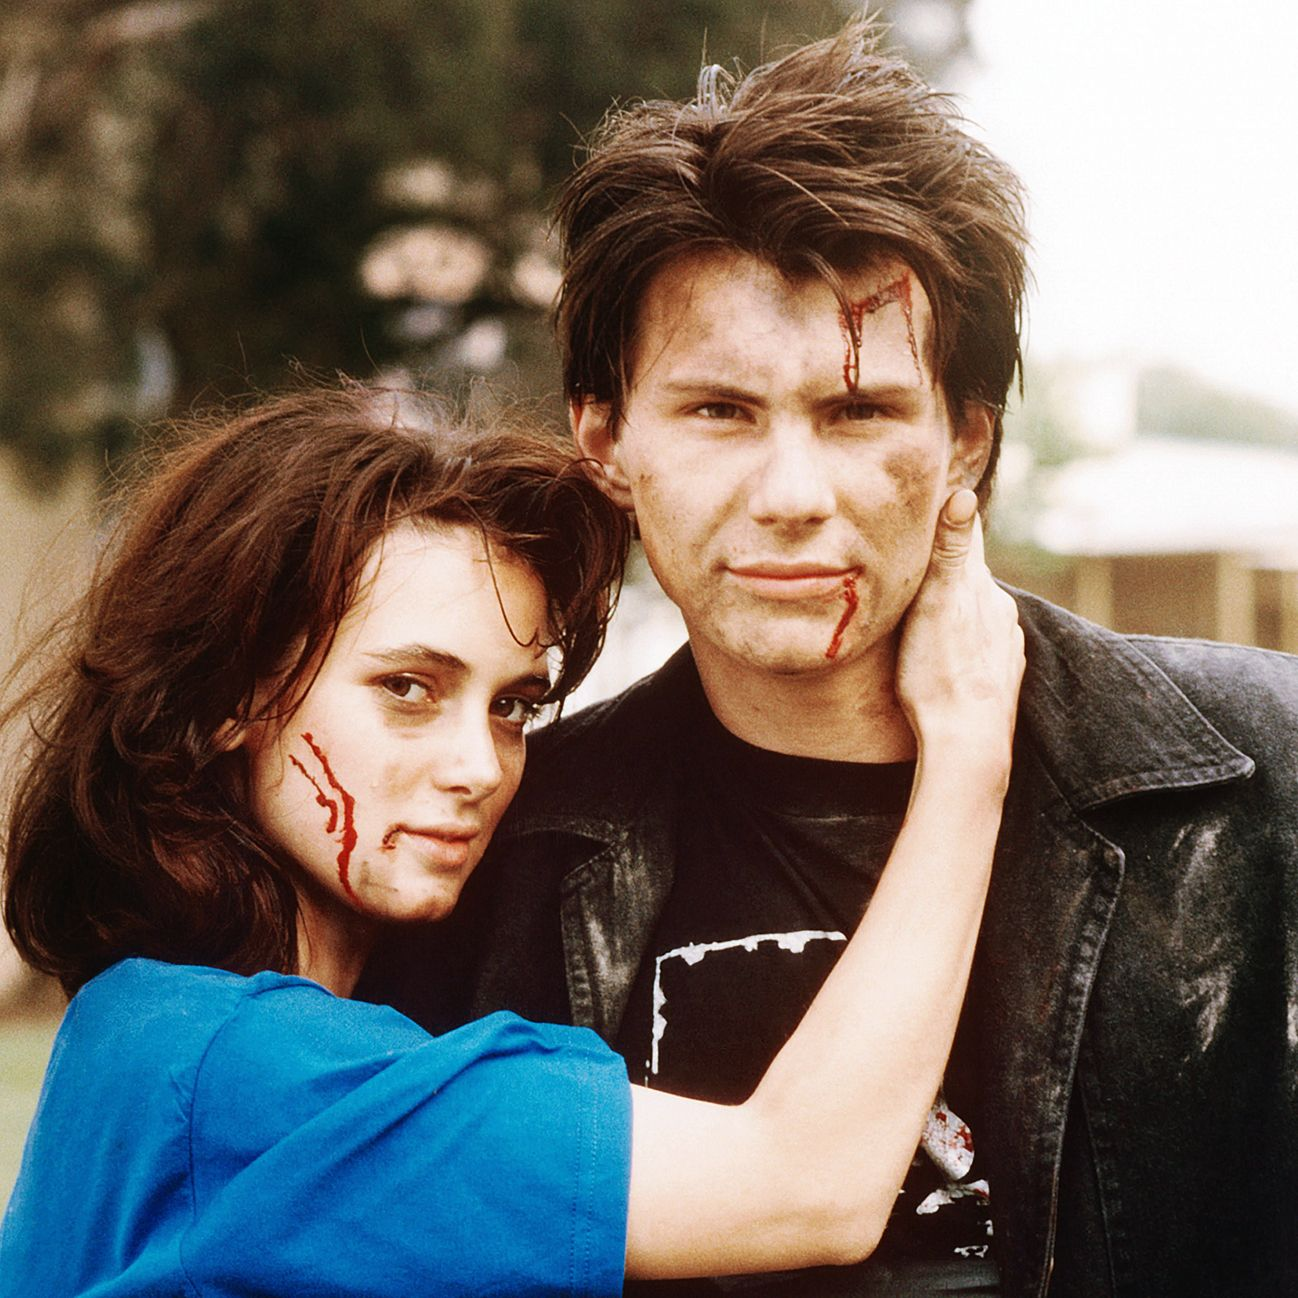 Heathers Winona Ryder stars as the whip-smart Veronica Sawyer, a popular girl who hates her best friends (a trio of queen bees, all named Heather). Her life spins out of control when she falls for the new kid at school—the trench coat-wearing, gun-toting J.D., played by Christian Slater—who convinces her to kill off her clique